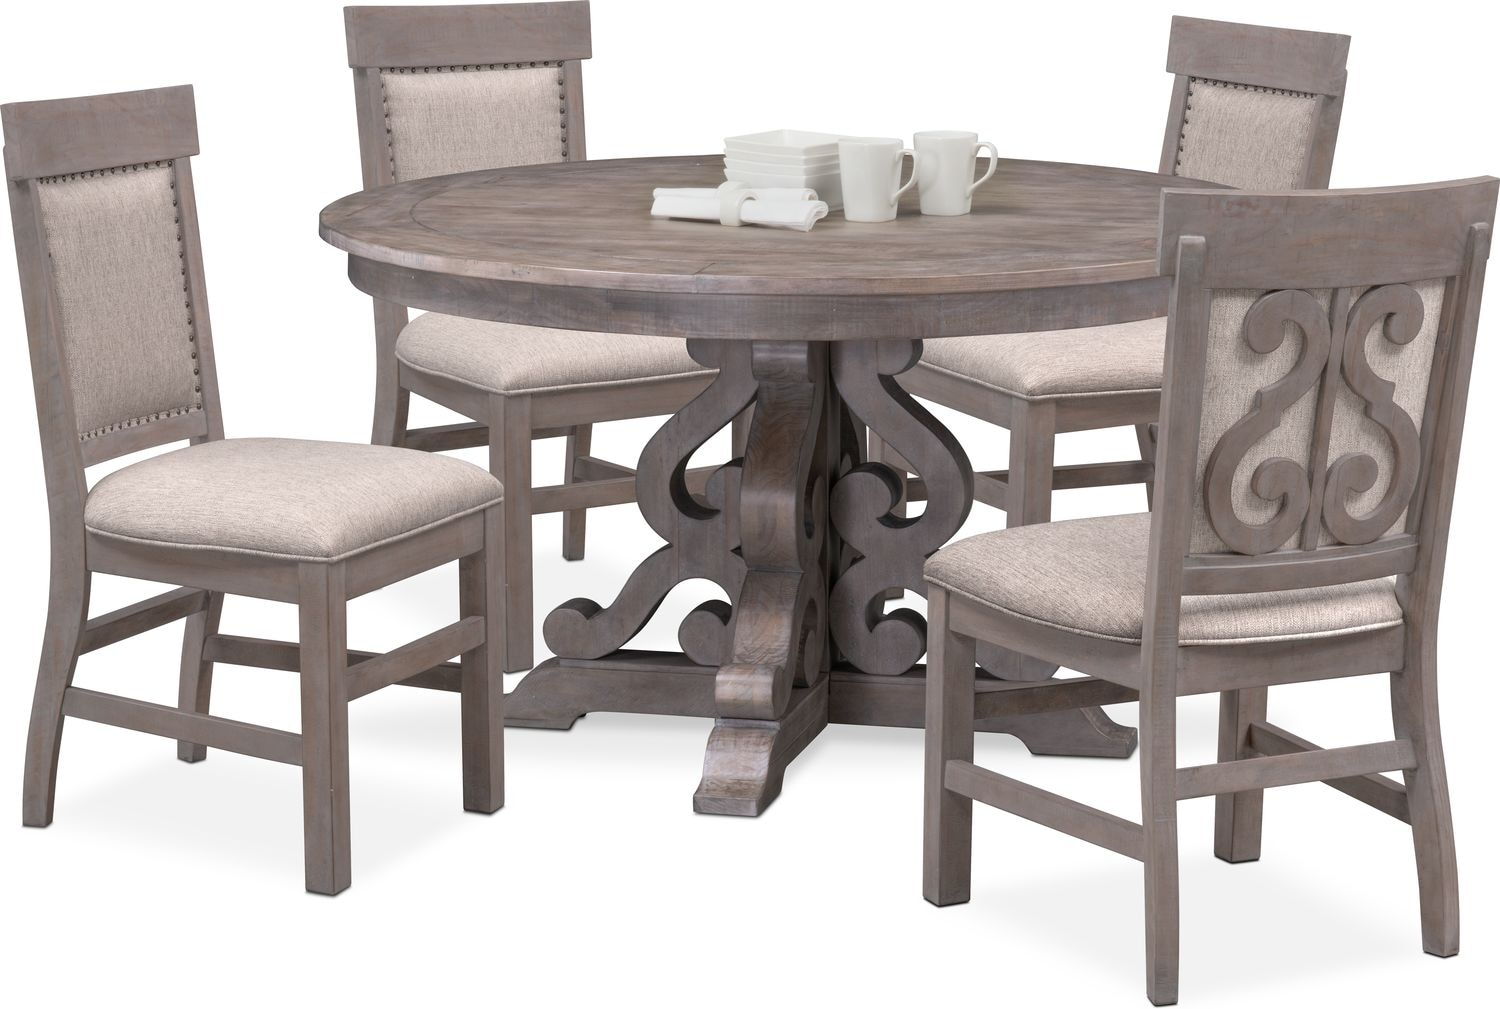 e255bcee34 ... Dining Room Furniture - Charthouse Round Dining Table and 4 Upholstered  Side Chairs